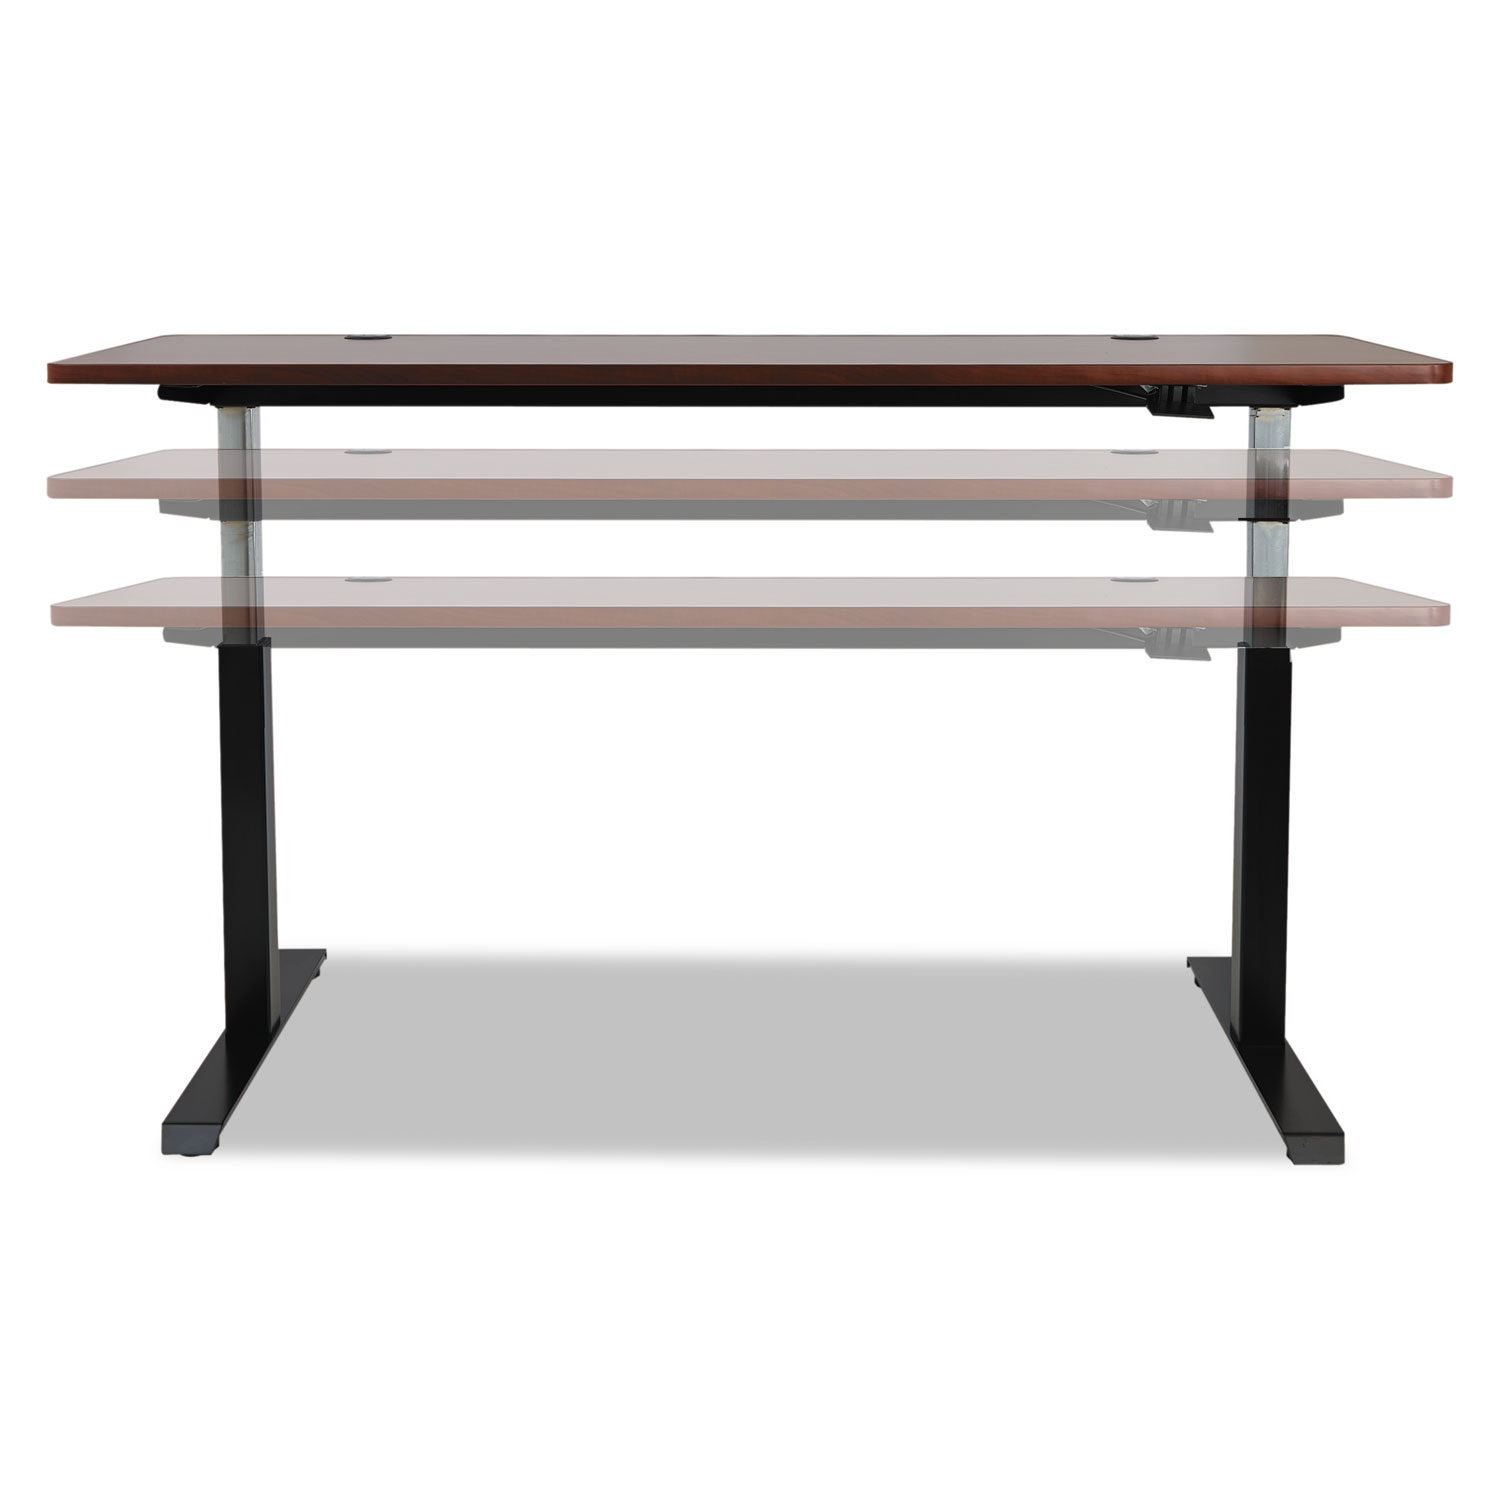 Adaptivergo Pneumatic Height Adjustable Table Base By